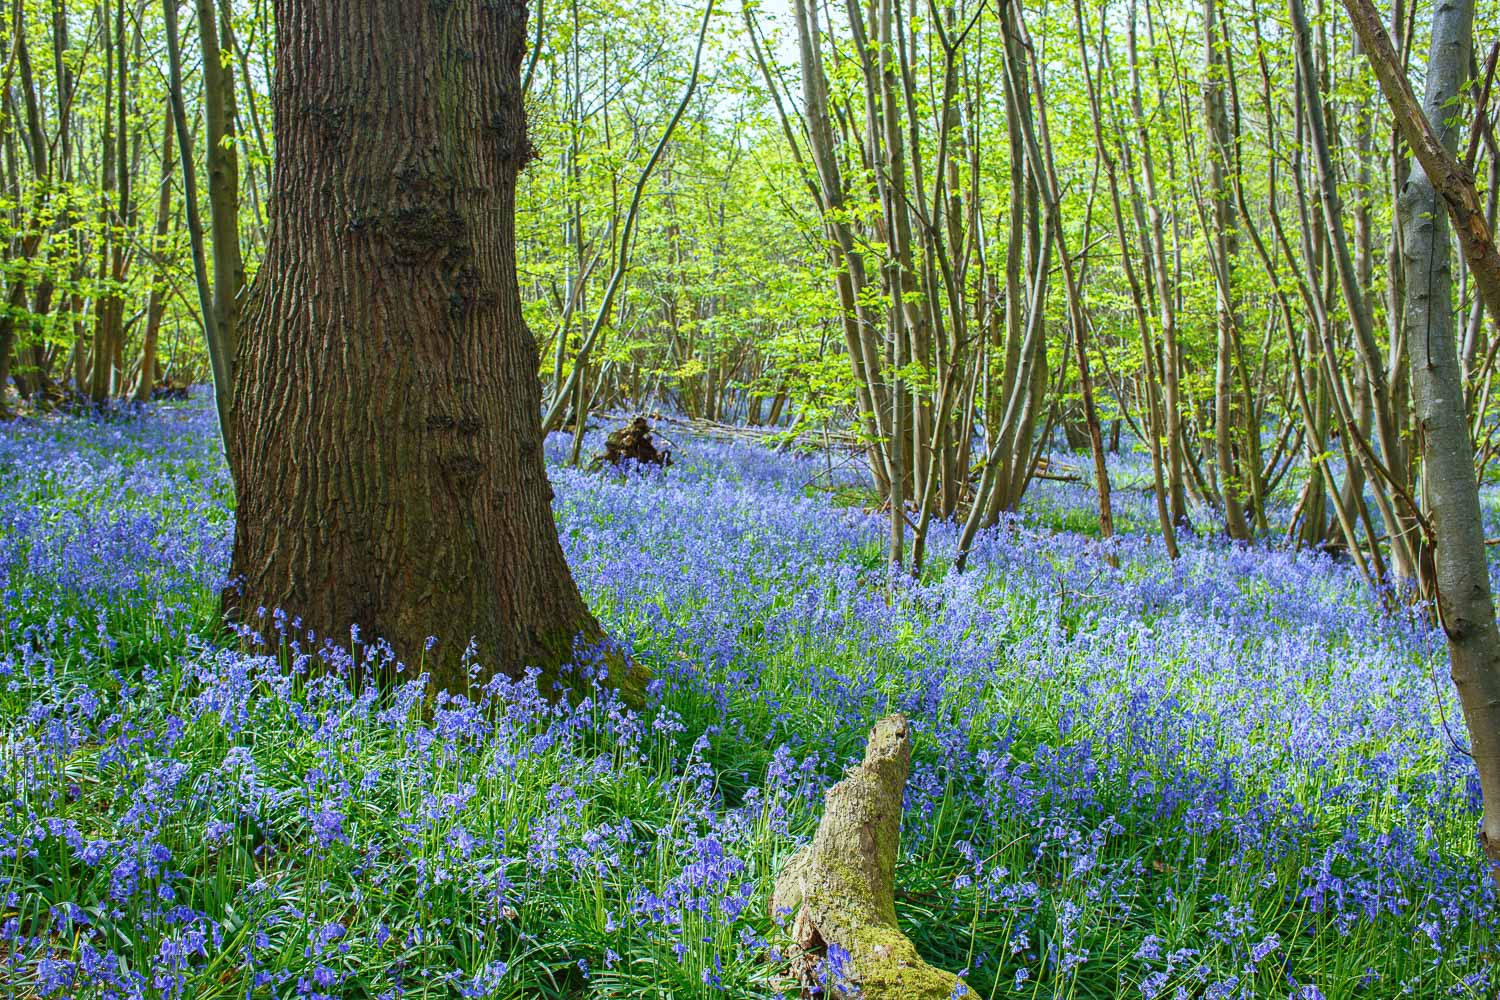 A carpet of bluebells in an ancient wood near the village of Guestling